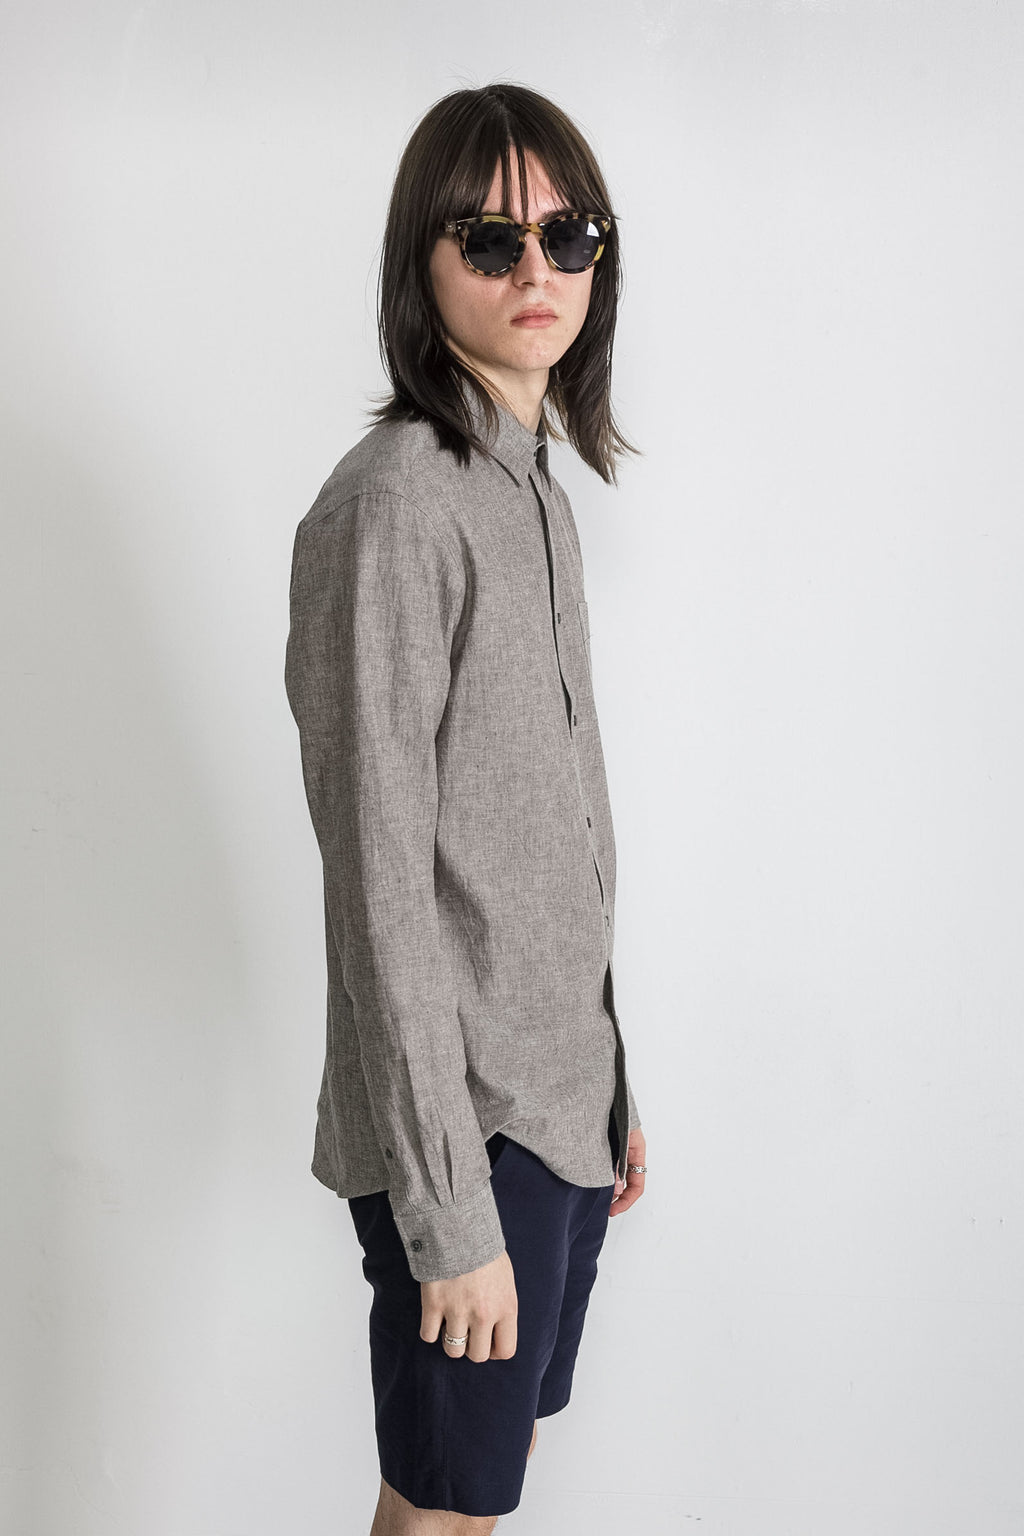 Japanese Dyed Canvas in Grey 006